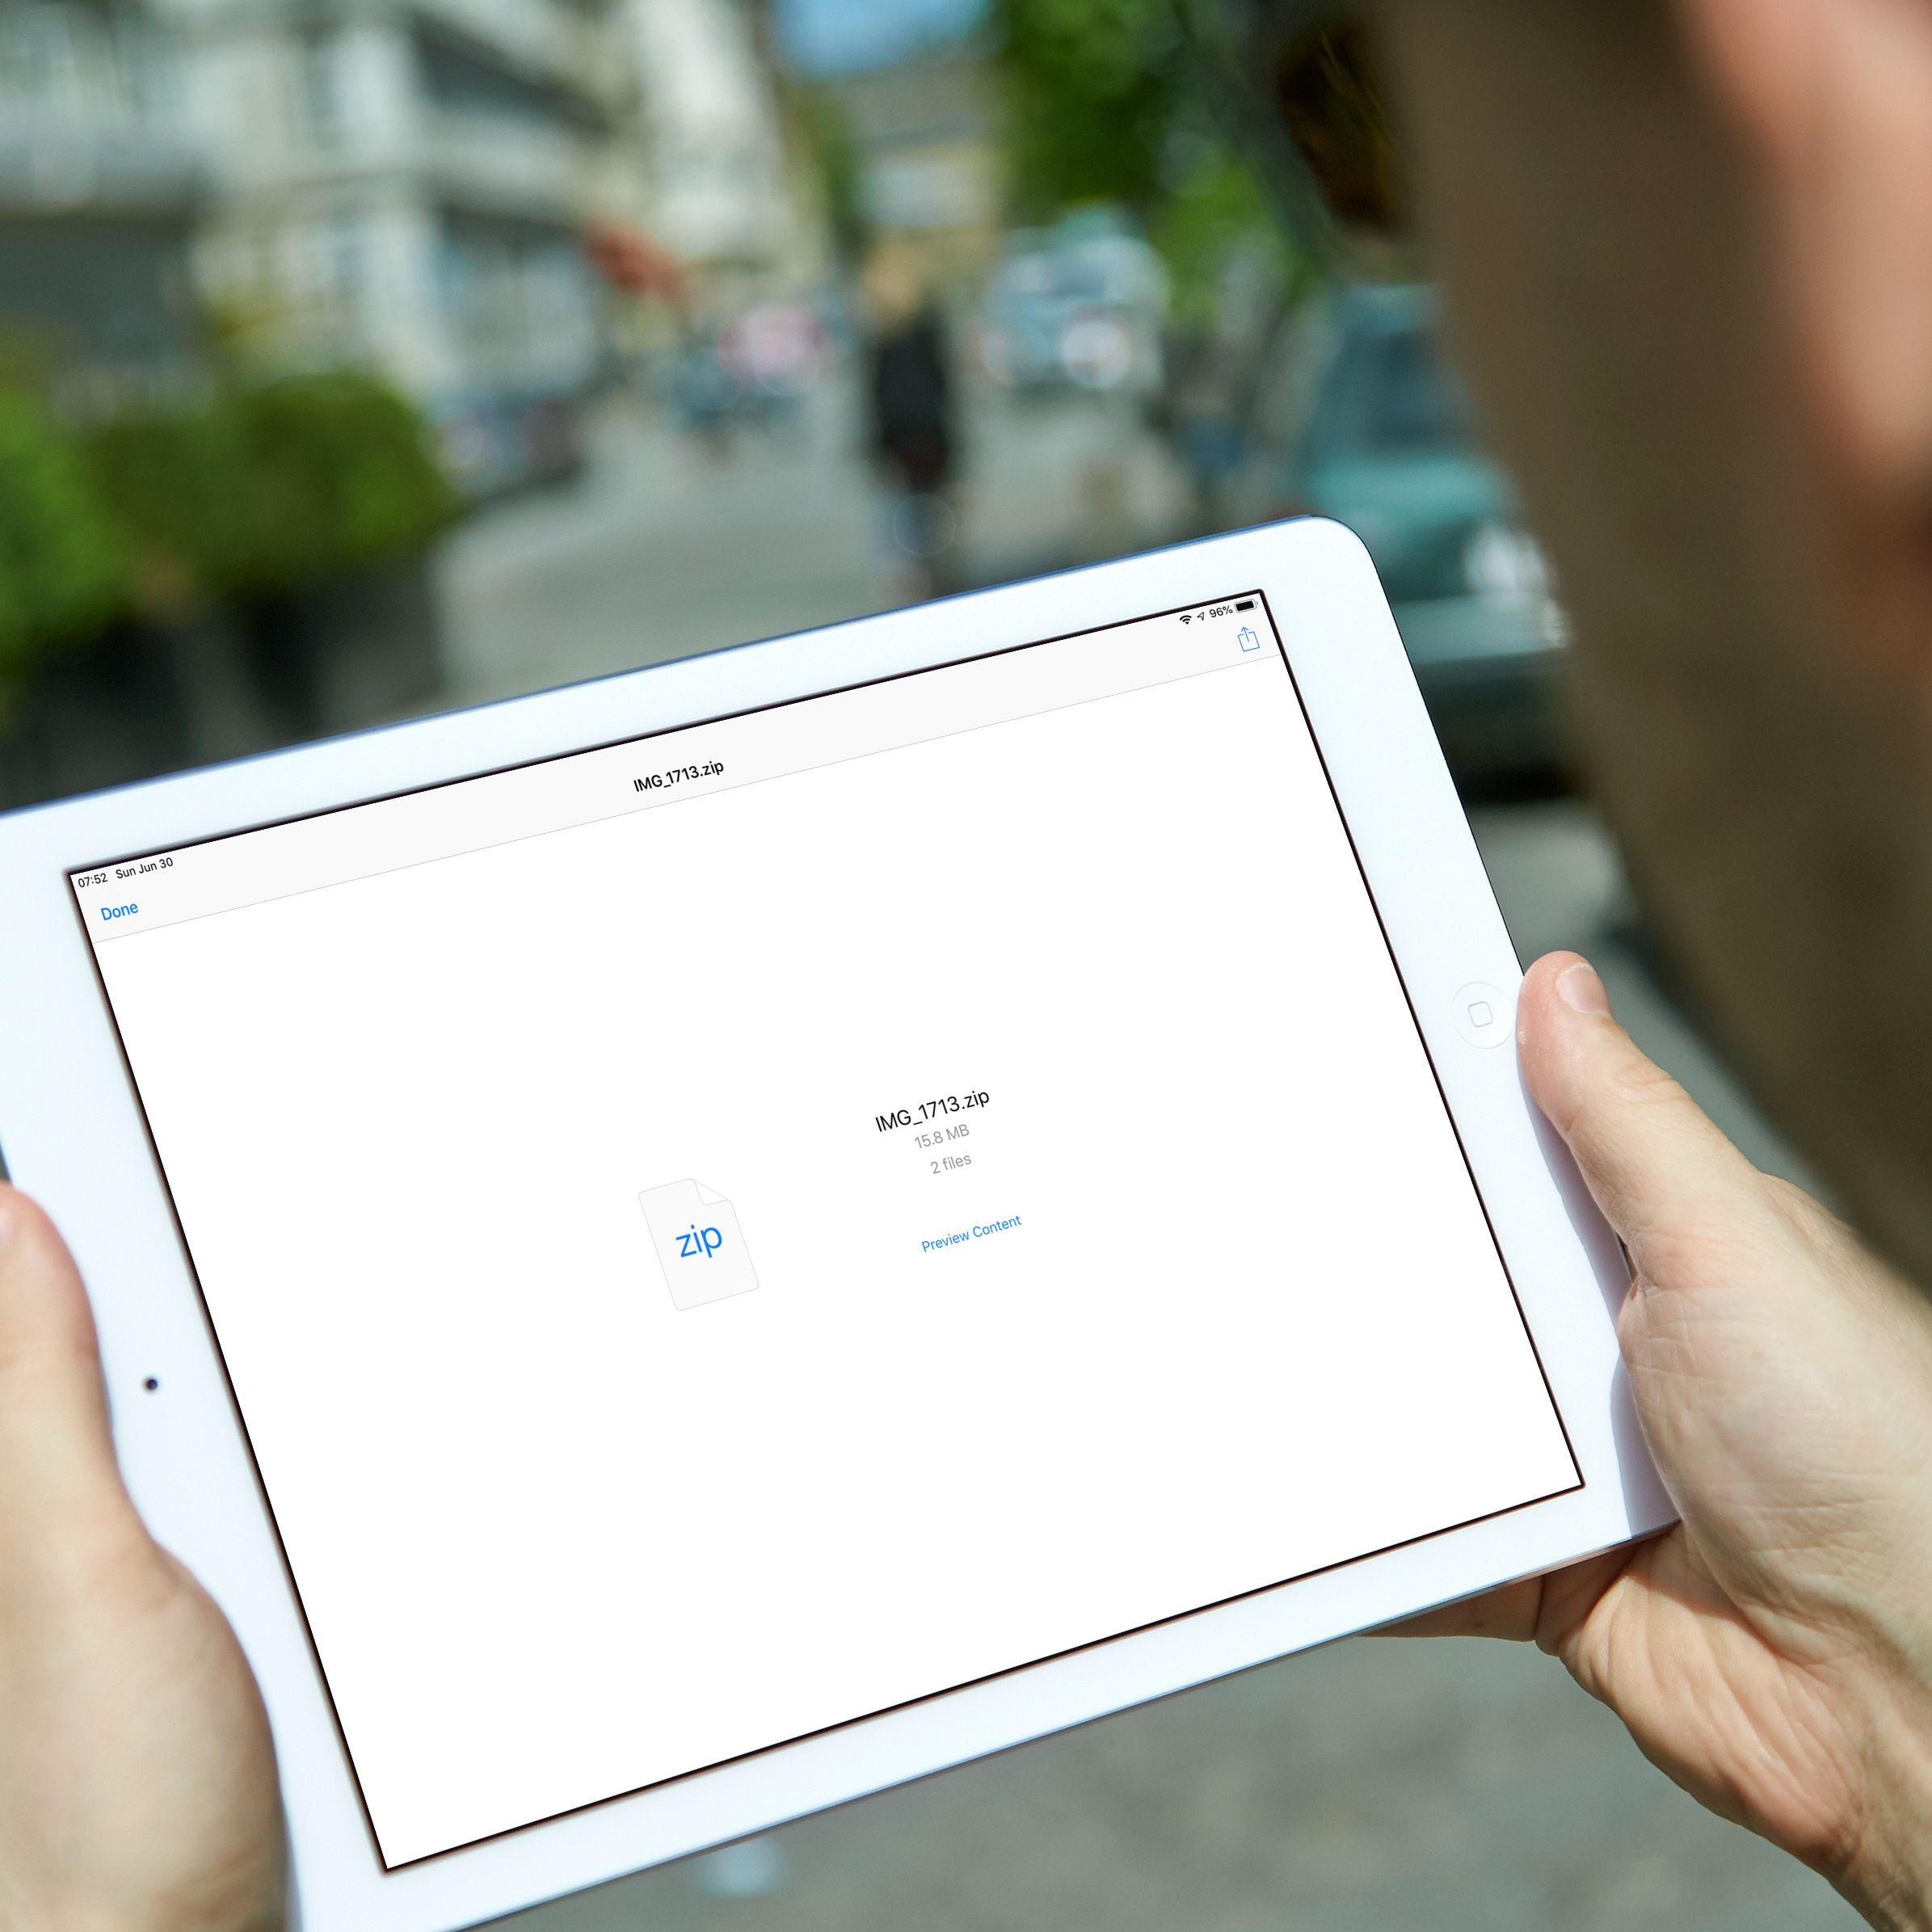 How to Make and Extract Zip Files on an iPad or iPhone Without iOS 13